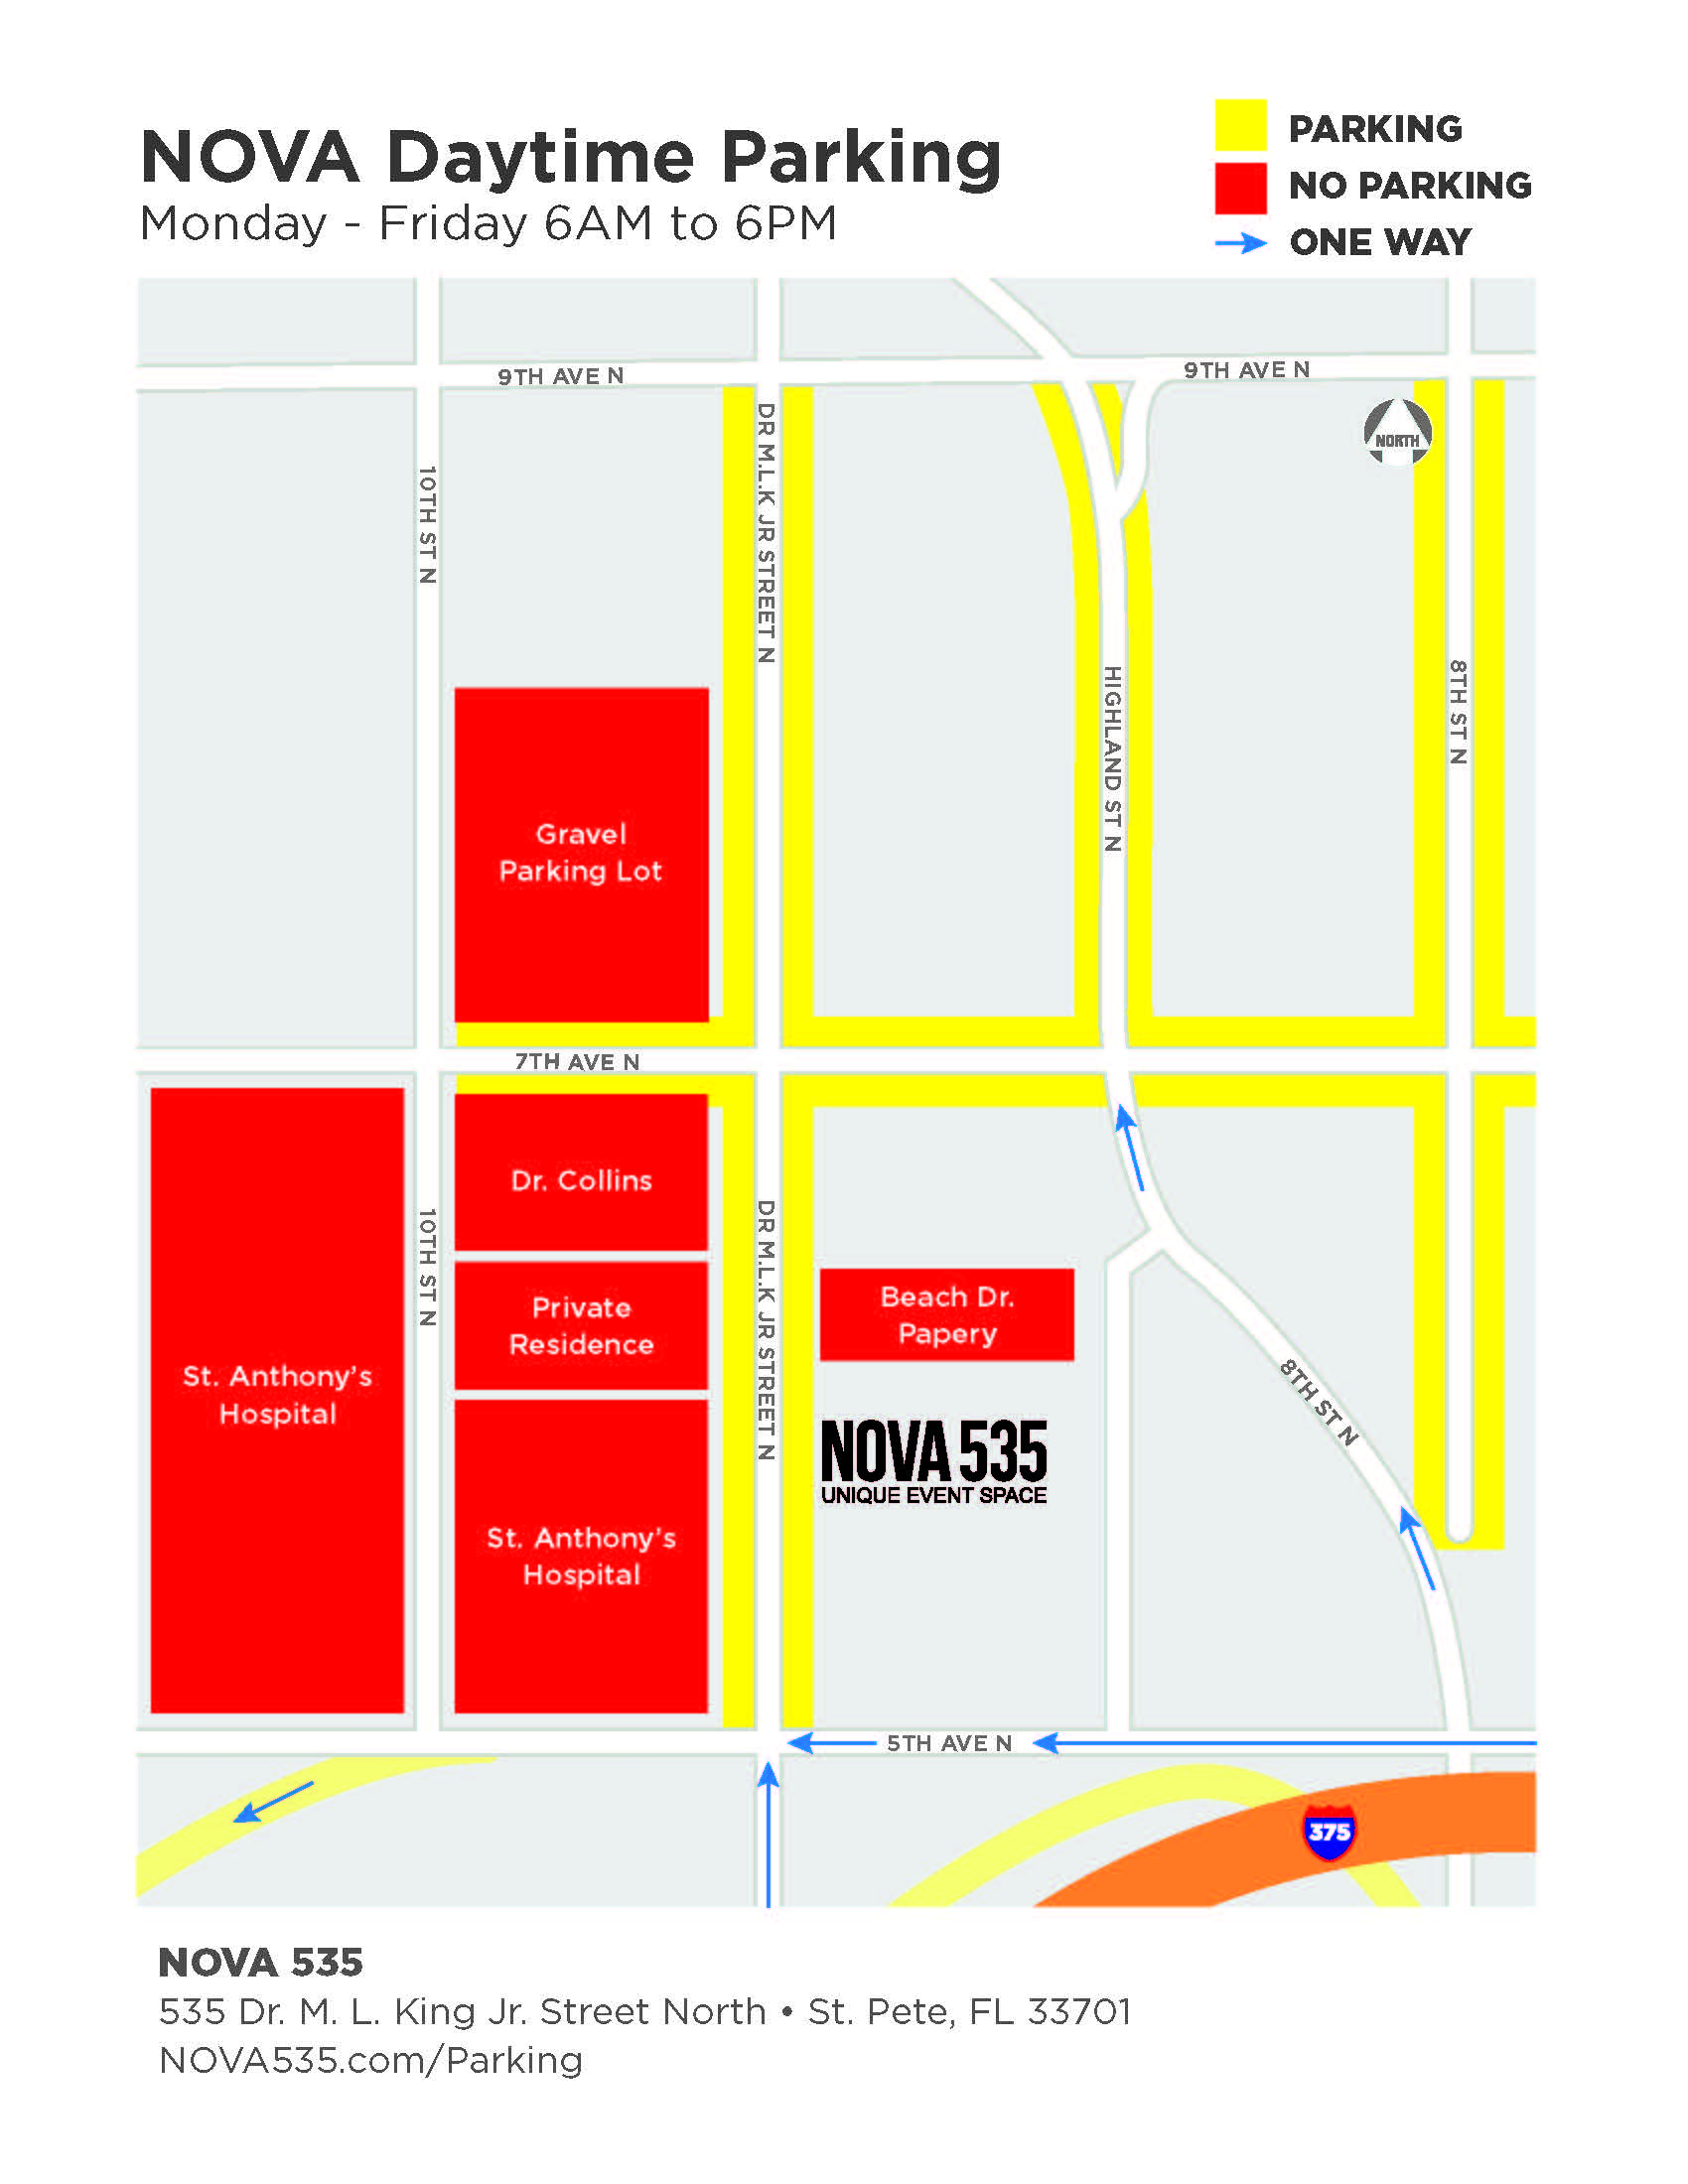 2020 NOVA 535 Parking Map for Daytime Weekdays